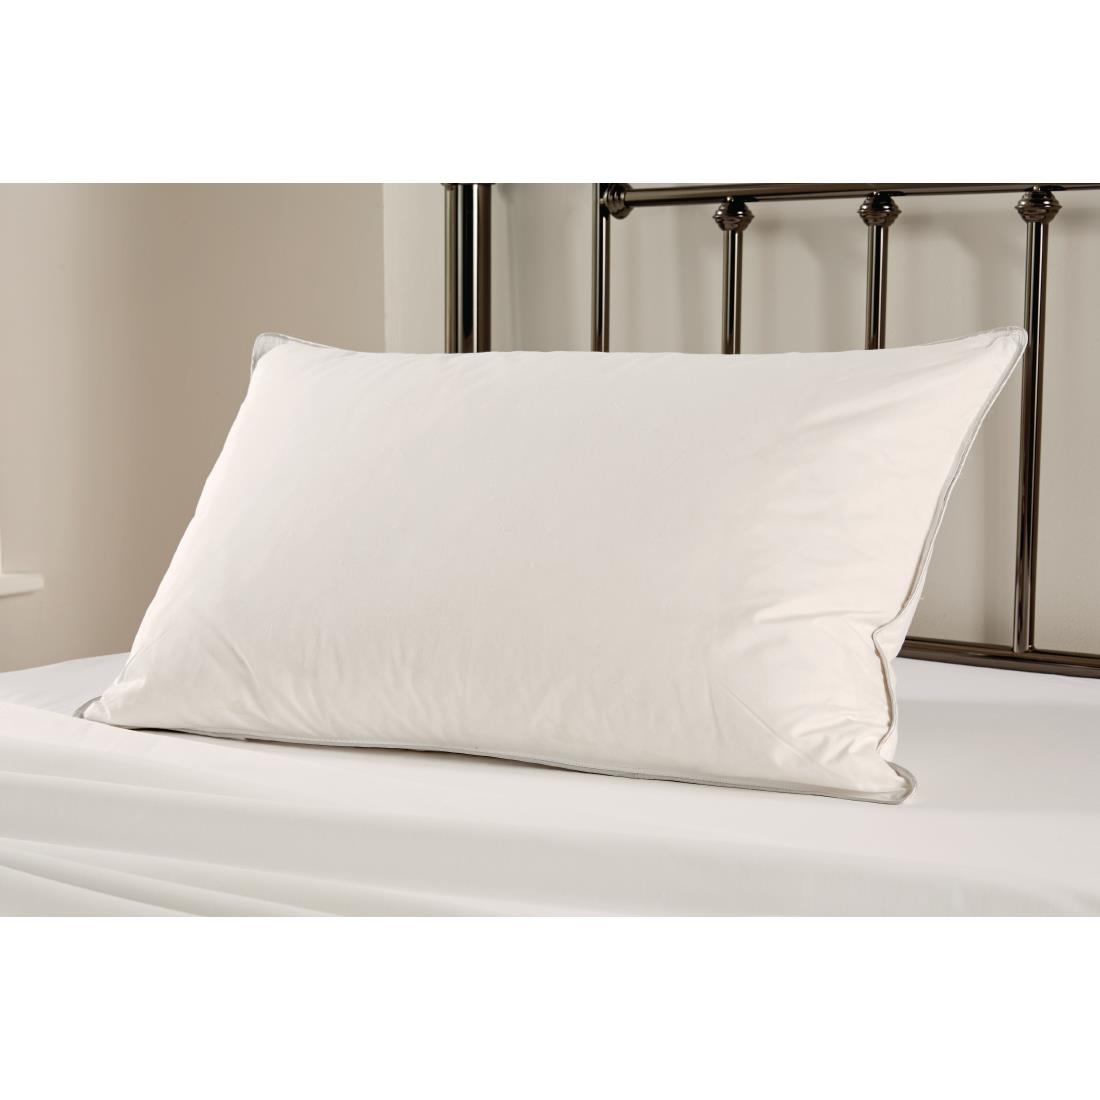 Image of Mitre Luxury Microfibre Pillow Firm